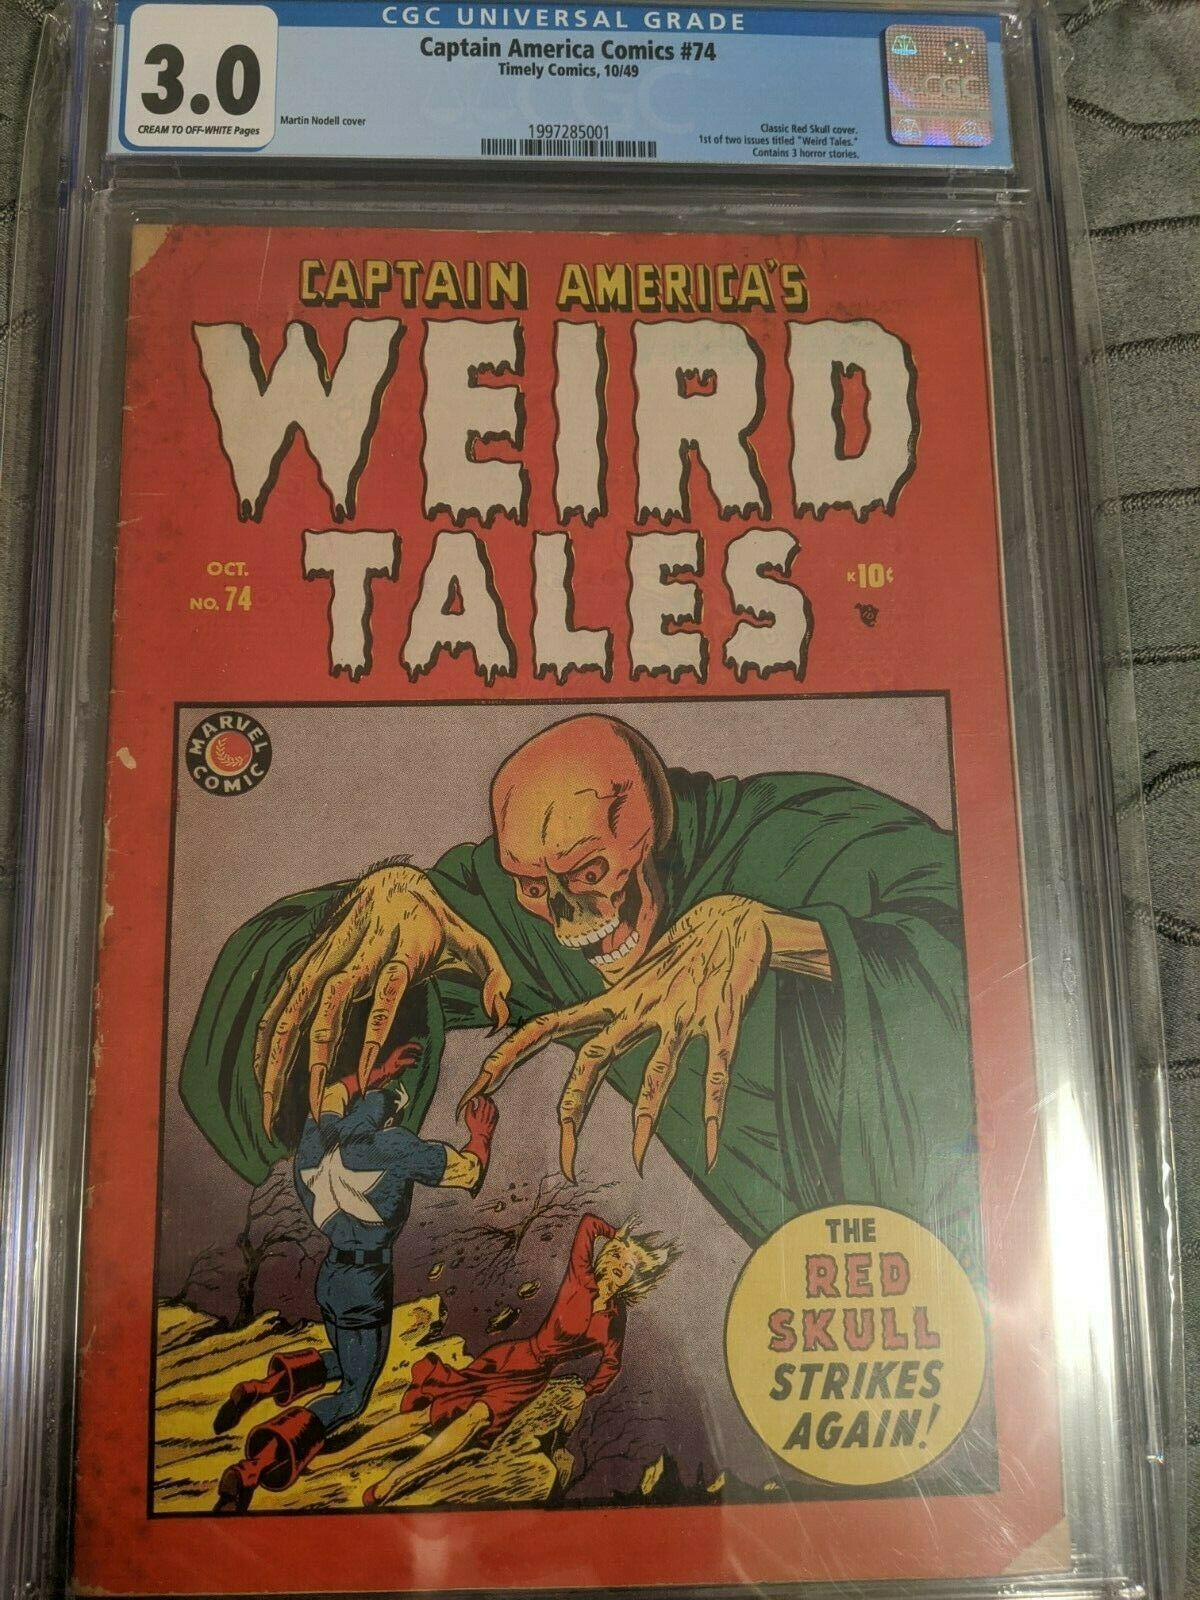 CAPTAIN AMERICA COMICS 74 CGC 30 SCARCE KEY RED SKULL CLASSIC HORROR COVER